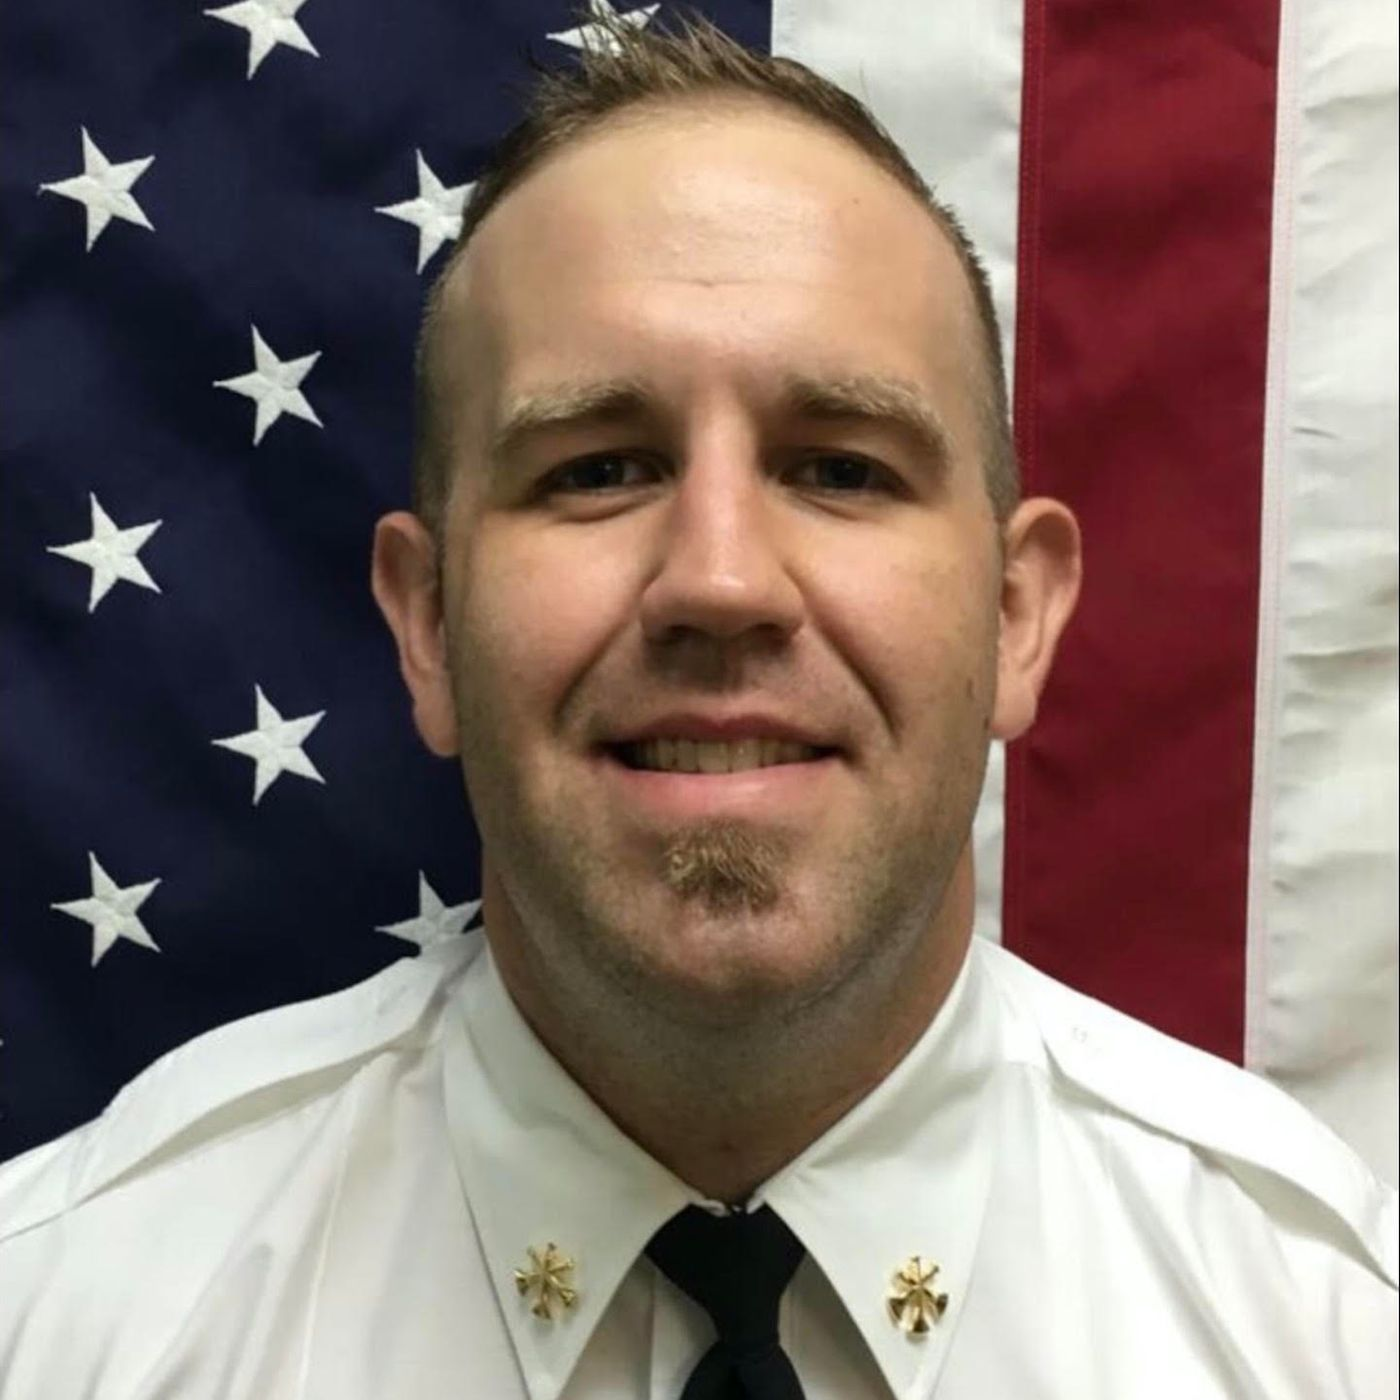 District Fire Chief Jason Corthell, From the Very Bottom to the Top